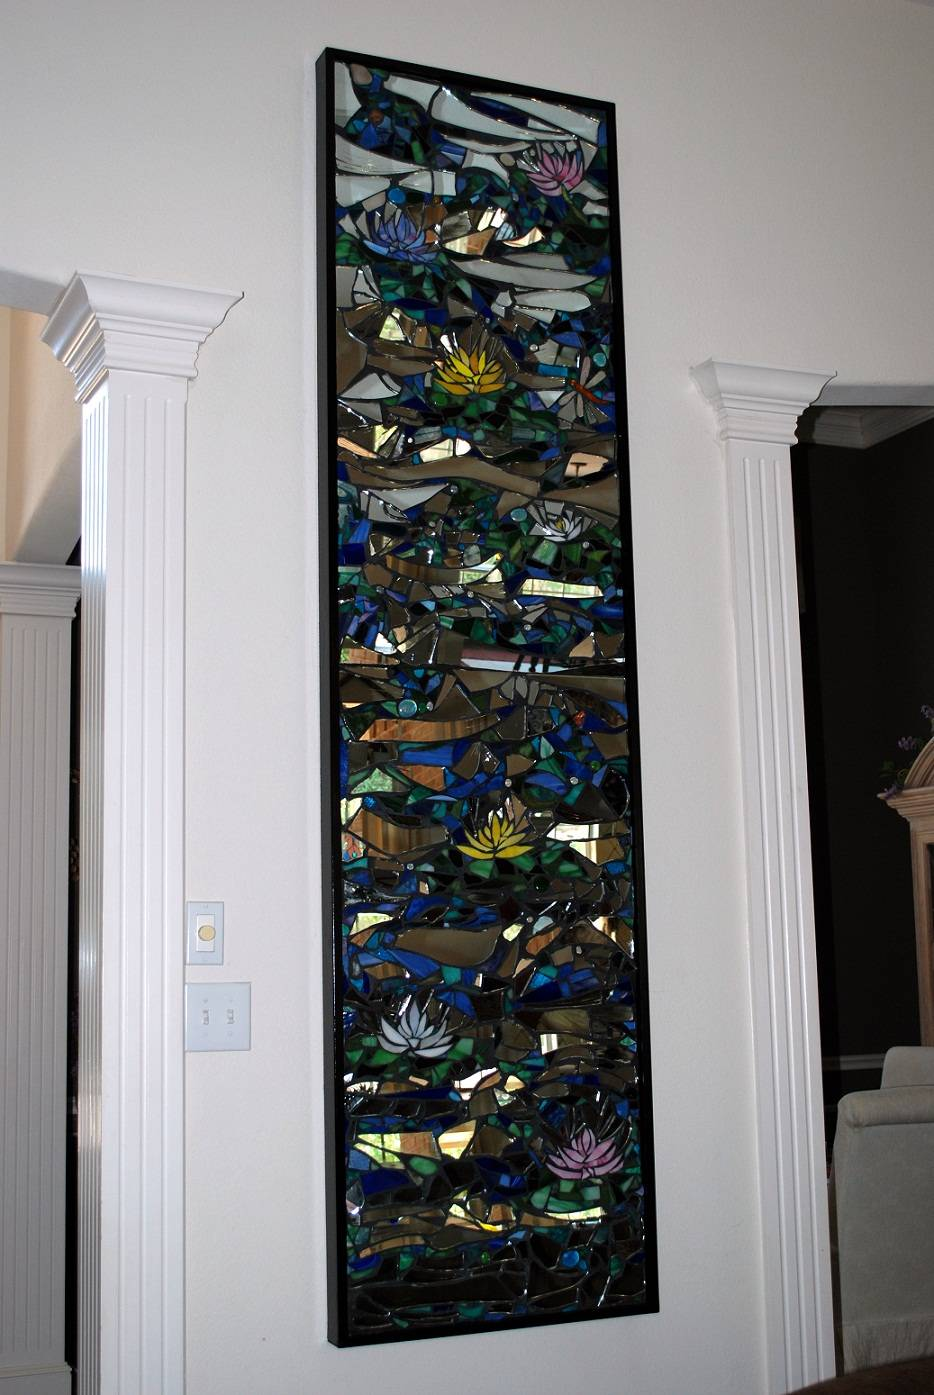 Waterlily Wall 8 foot x 2 foot